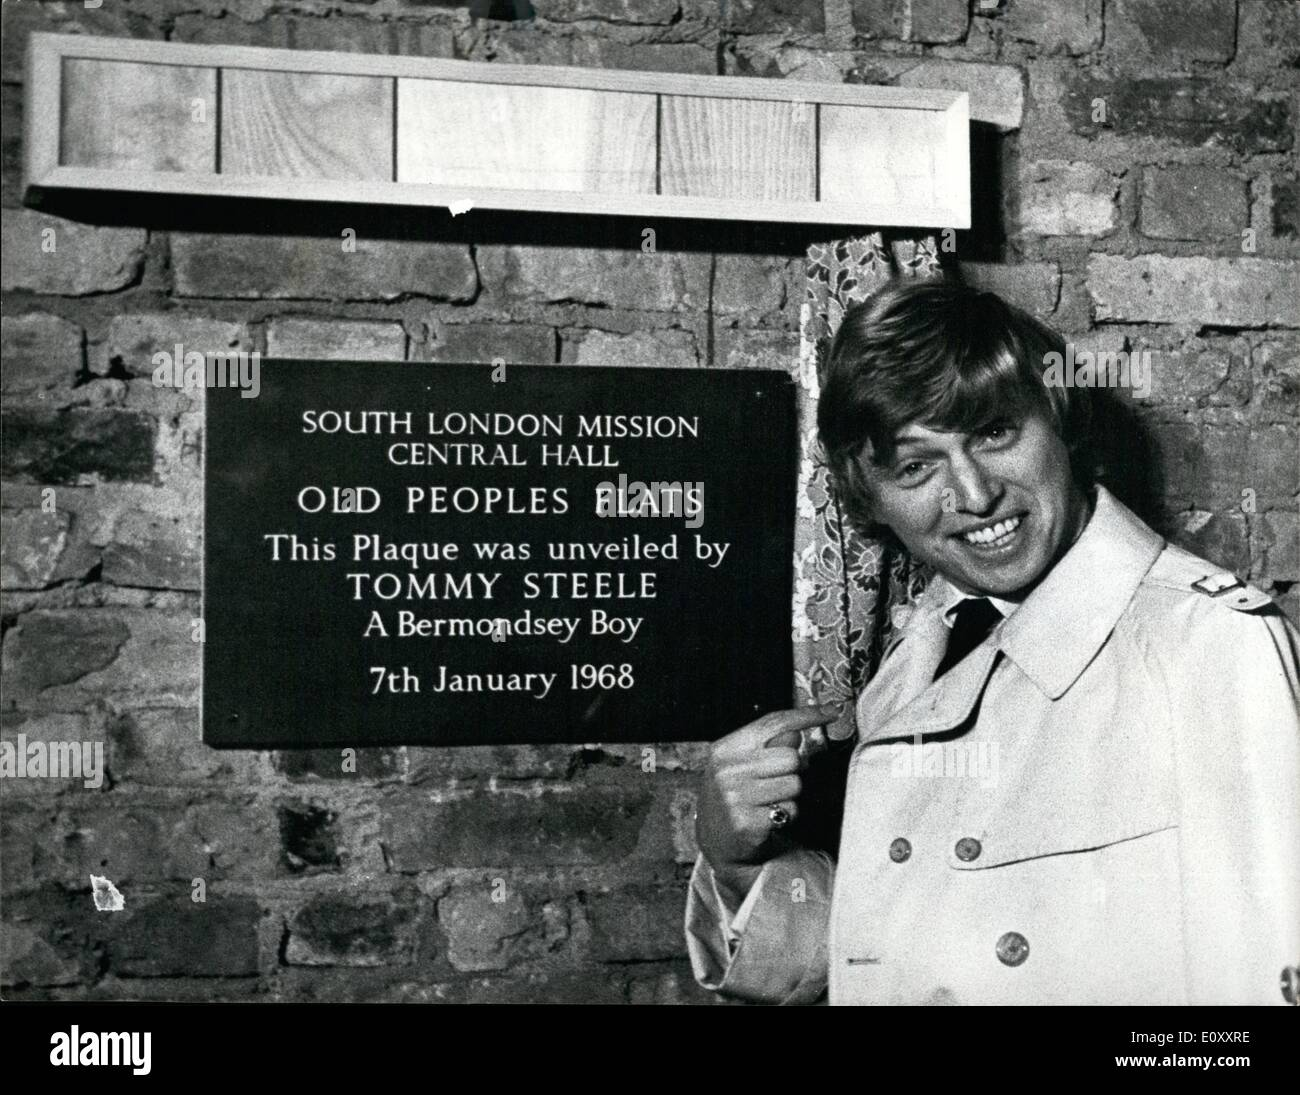 Jan. 08, 1968 - 8-1-68 Tommy Steele returns to Bermondsey to unveil plaque. Tommy Steele, former pop idol and now - Stock Image